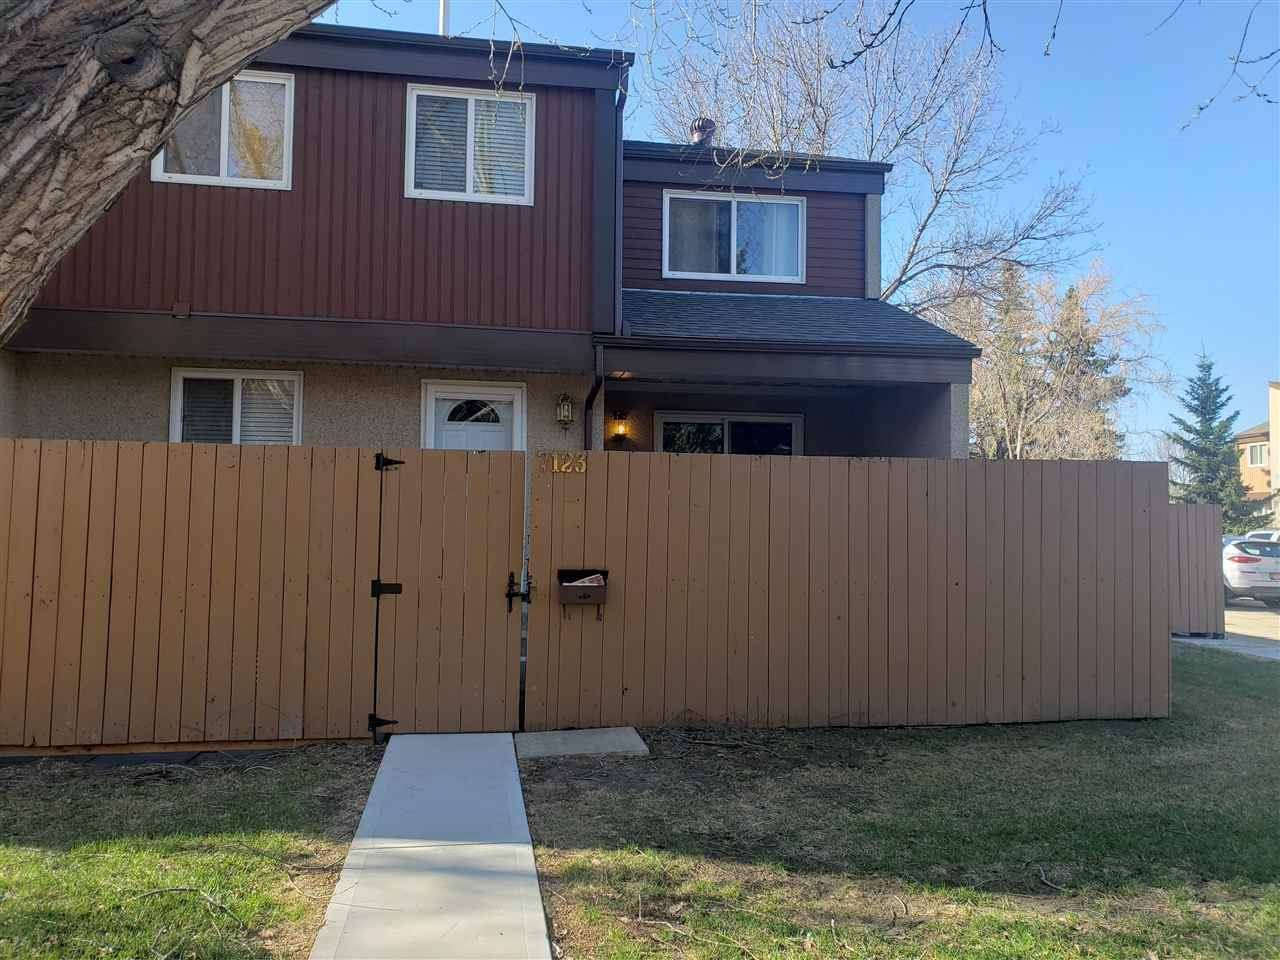 Townhouse for sale at 7123 180 St Nw Edmonton Alberta - MLS: E4189092